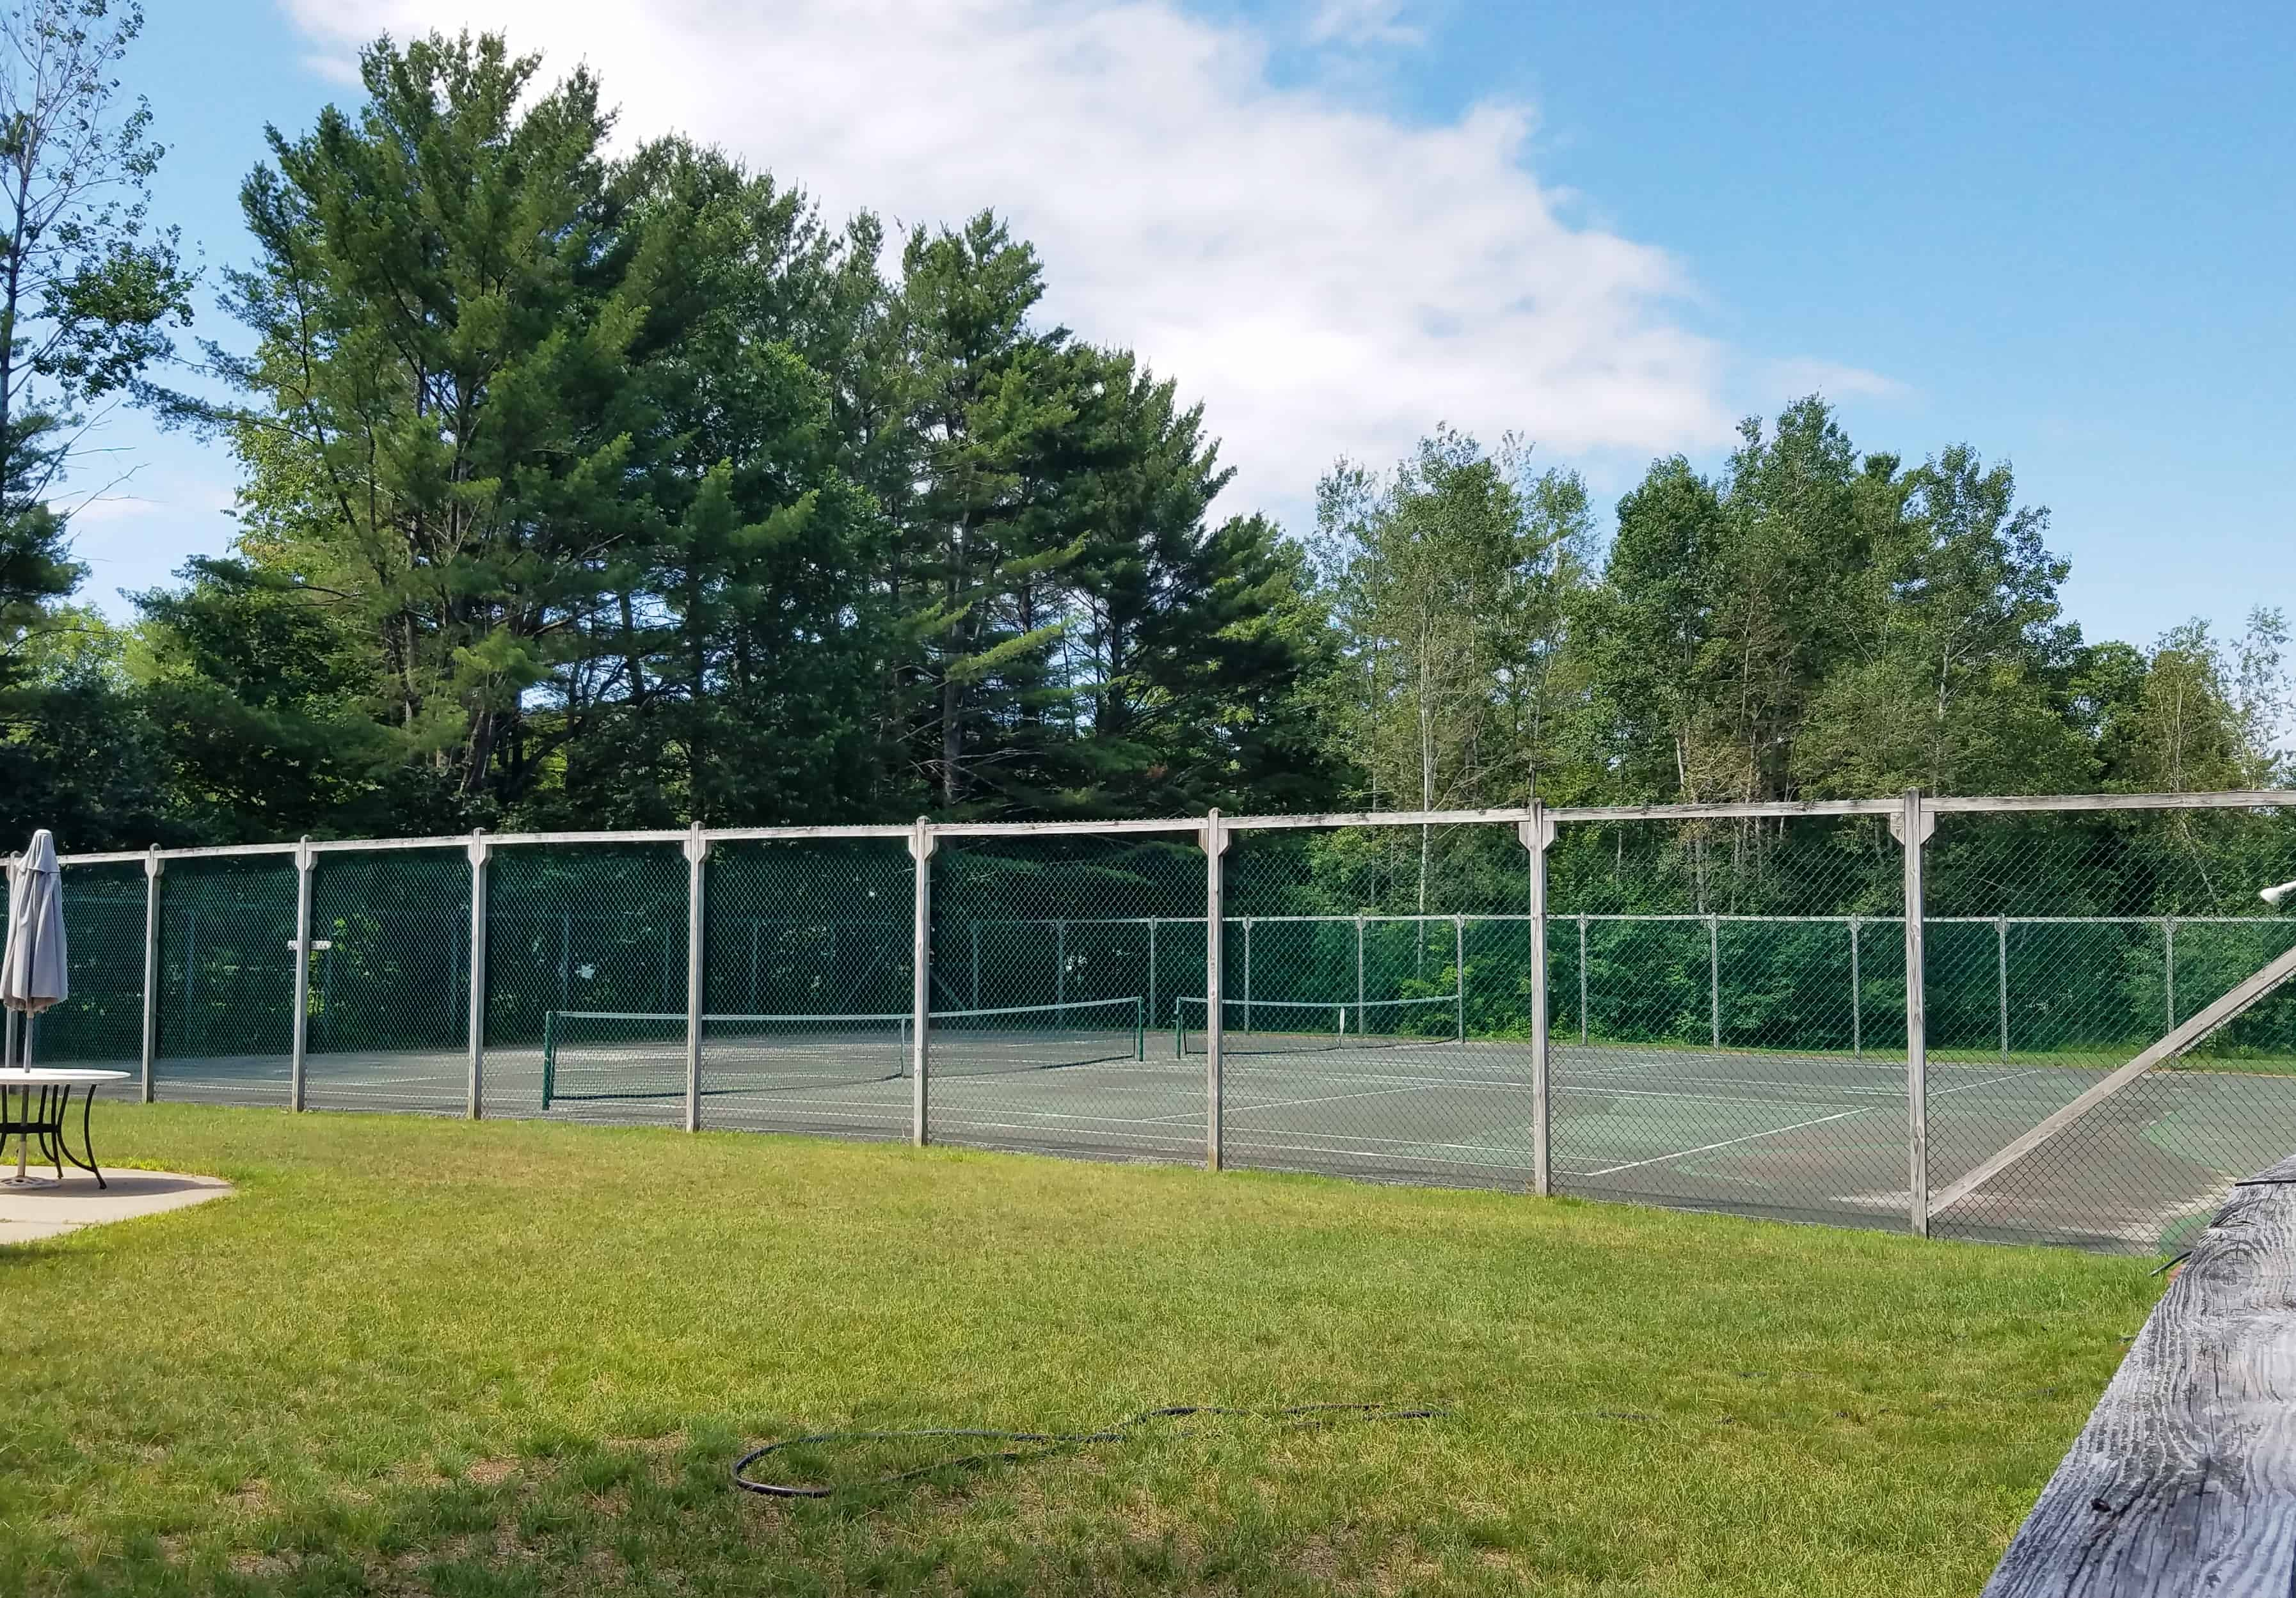 Tennis Courts 7-6 Overlook Rd Unit 3B, Campton, NH 03223 Alpine Lakes Real Estate